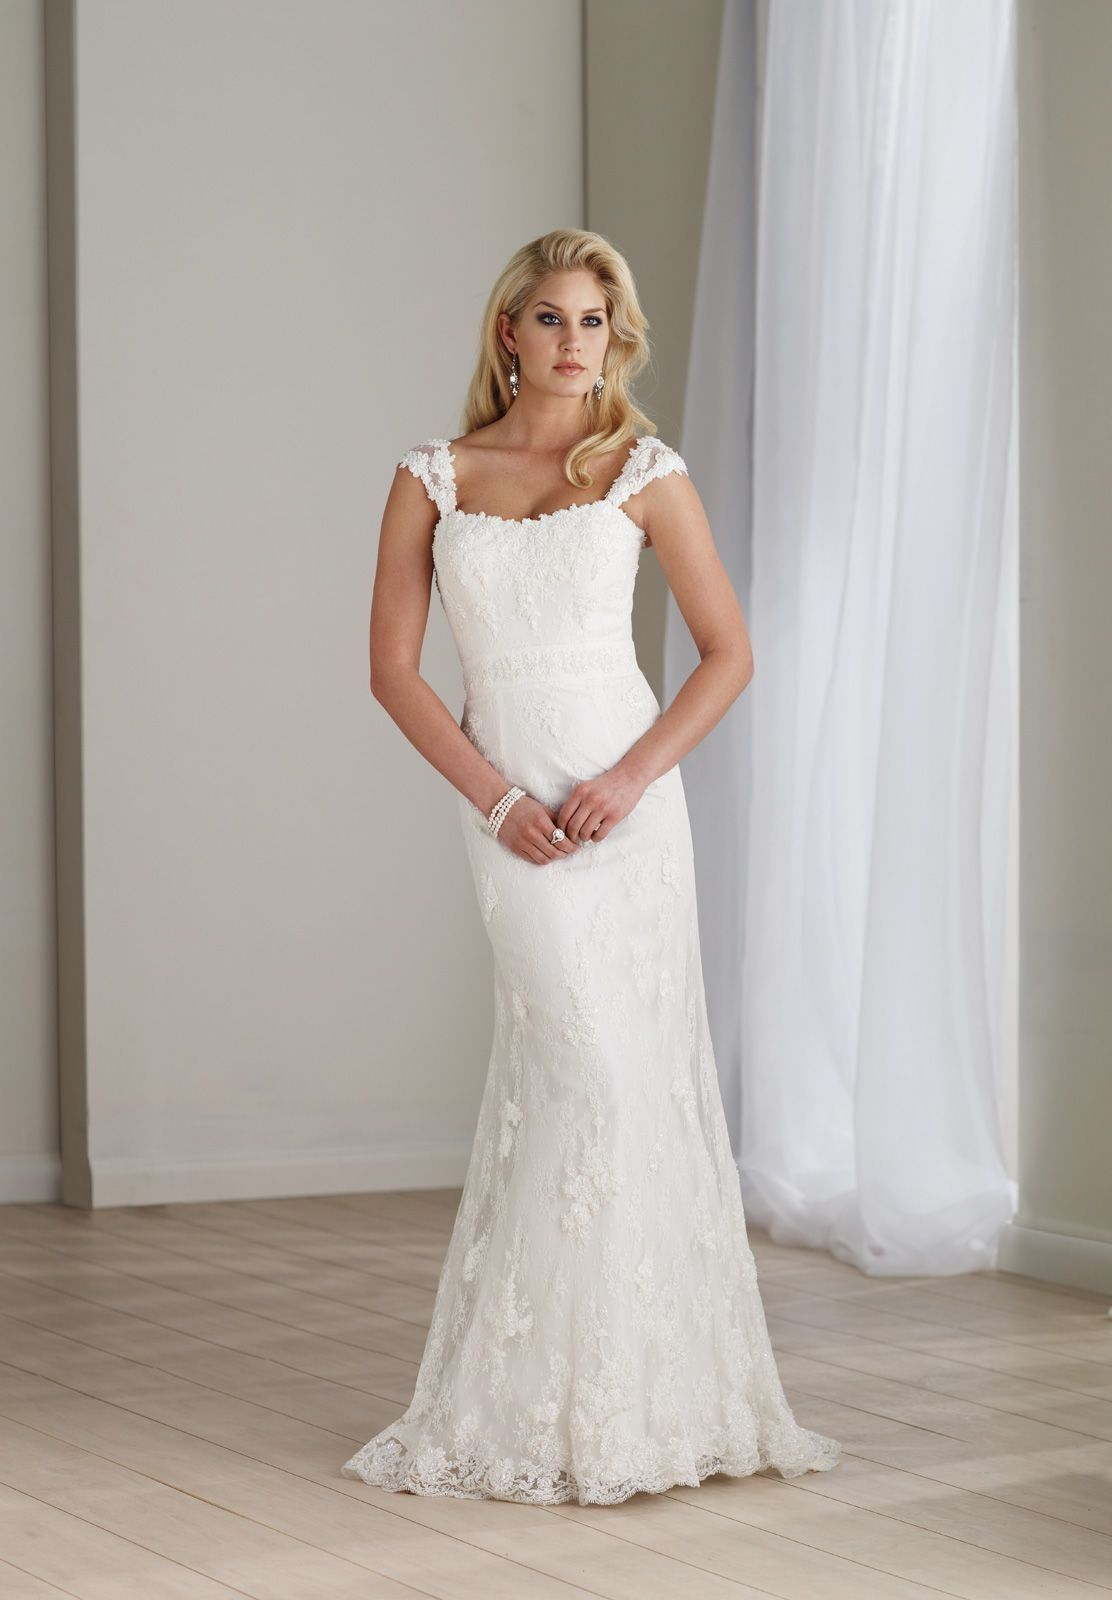 Bateau wedding dresses lace bateau a line elegant wedding dress bateau wedding dresses lace bateau a line elegant wedding dress ombrellifo Choice Image